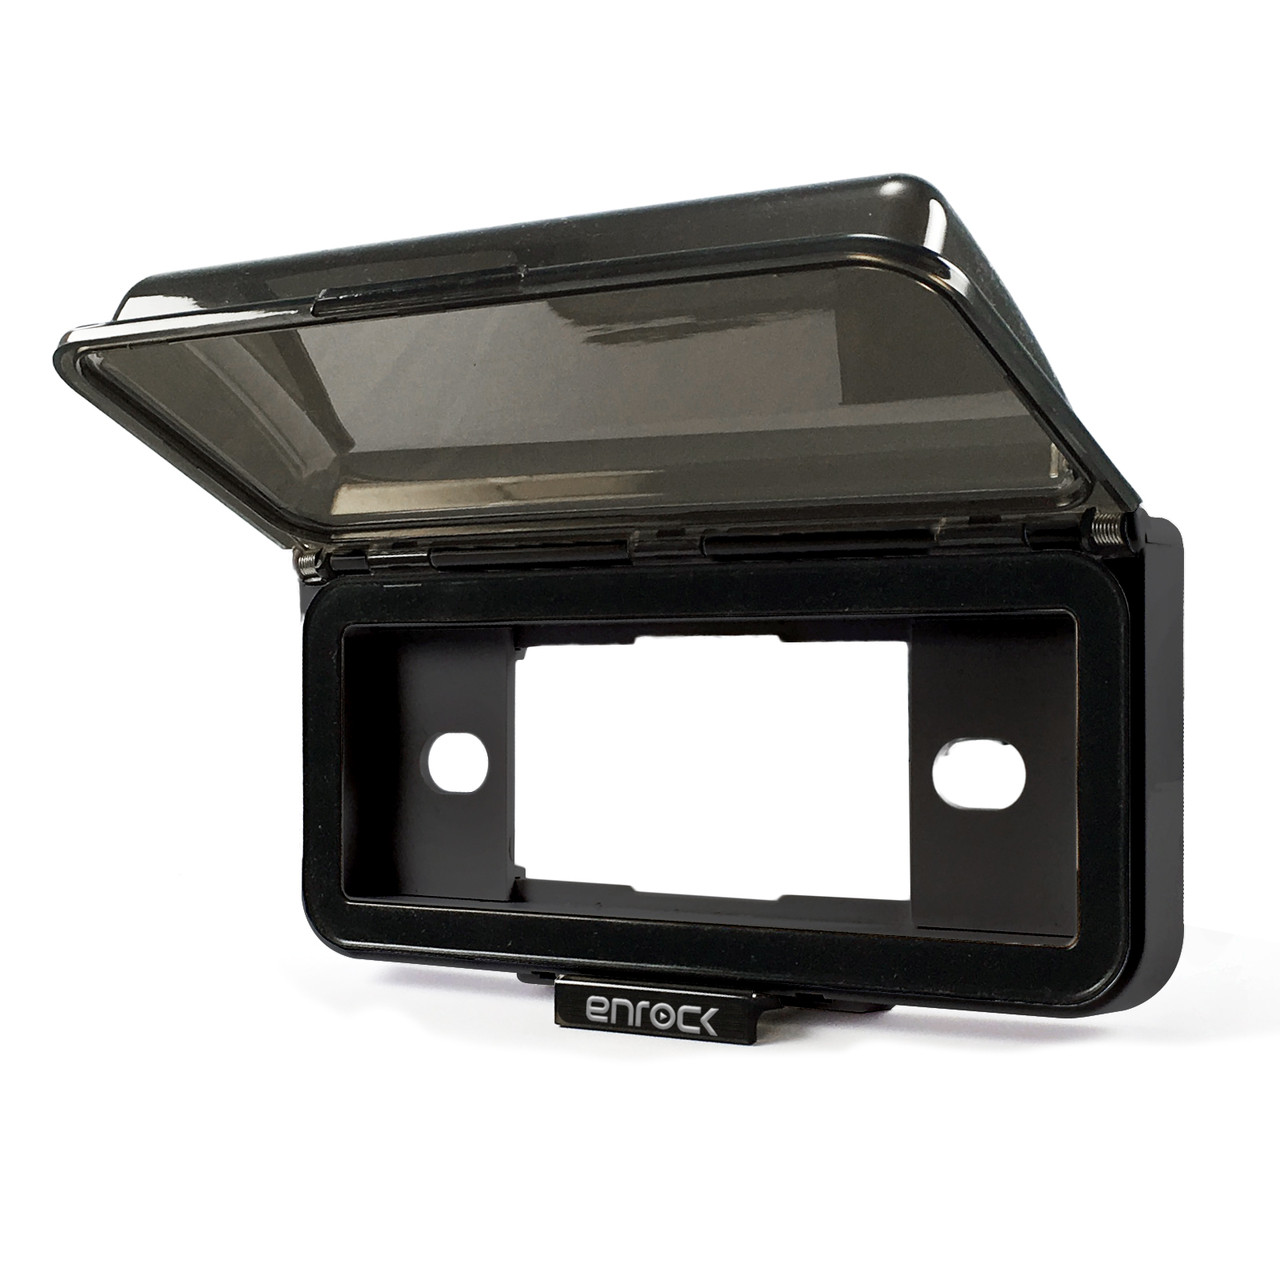 Enrock Marine Audio Dash Kit Protector For Boat / Yacht / Off Road ...